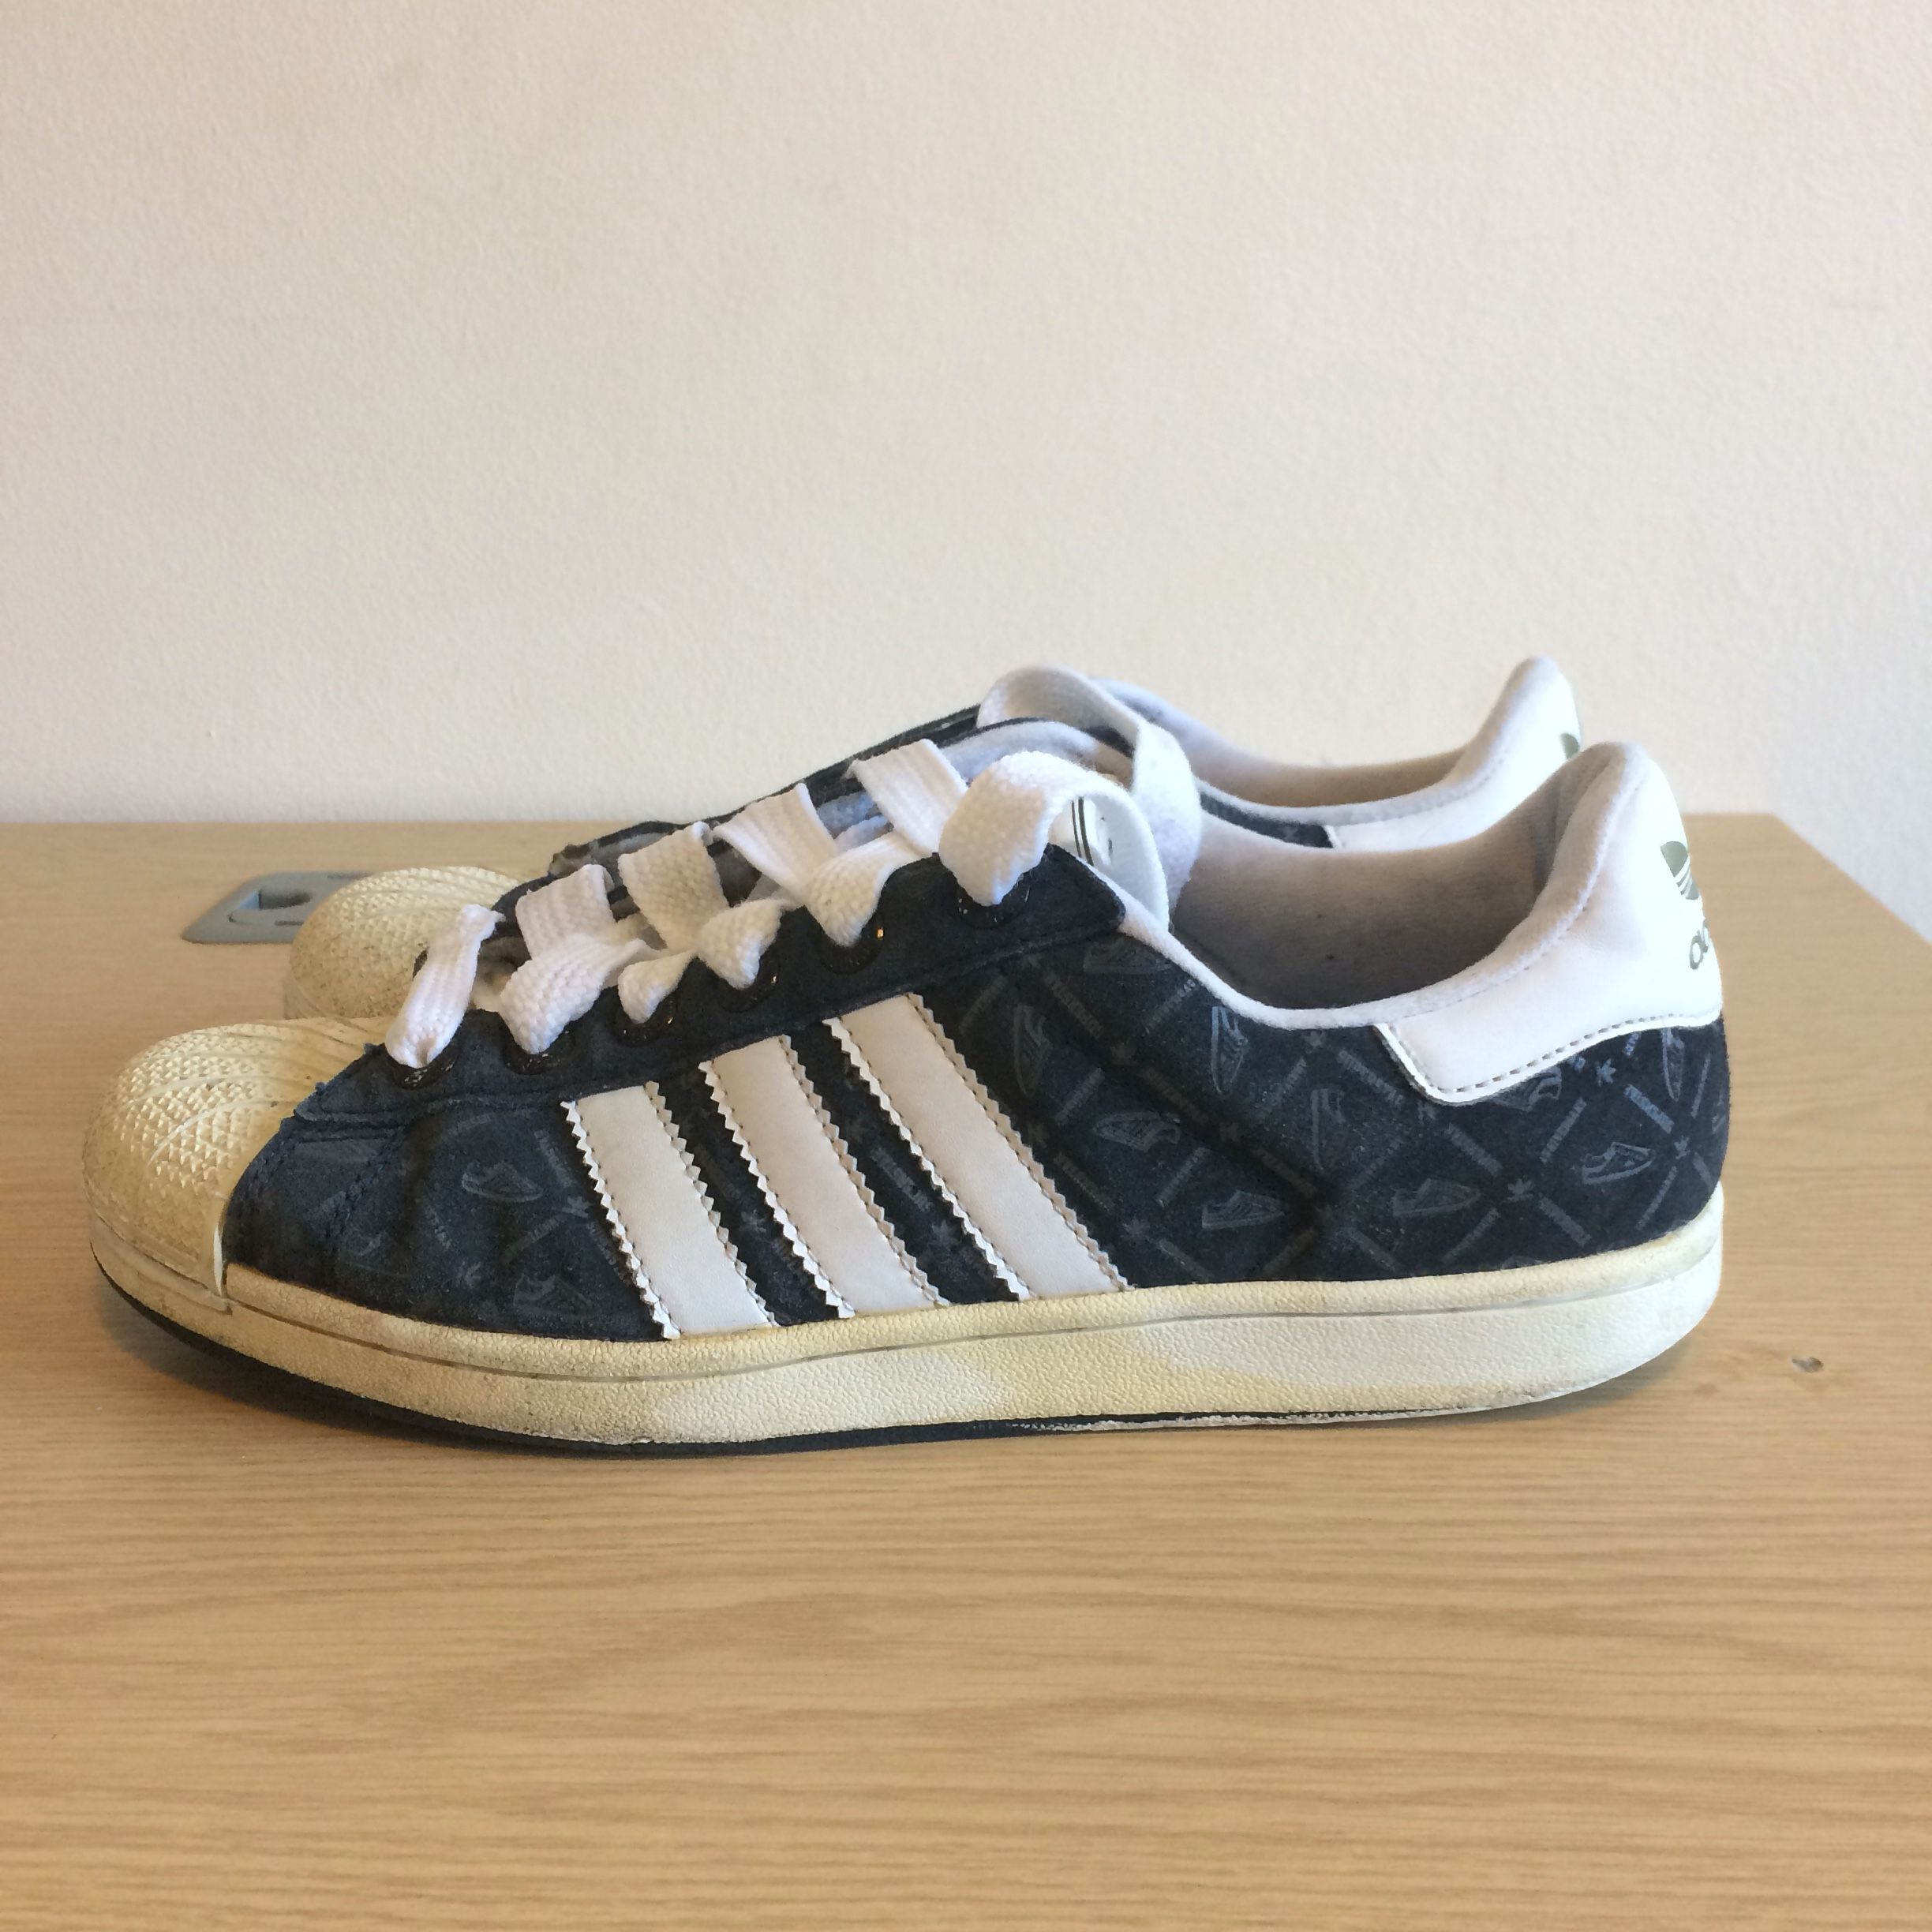 promo code be328 6fc36 Adidas Superstar 35th Anniversary special edition... - Depop